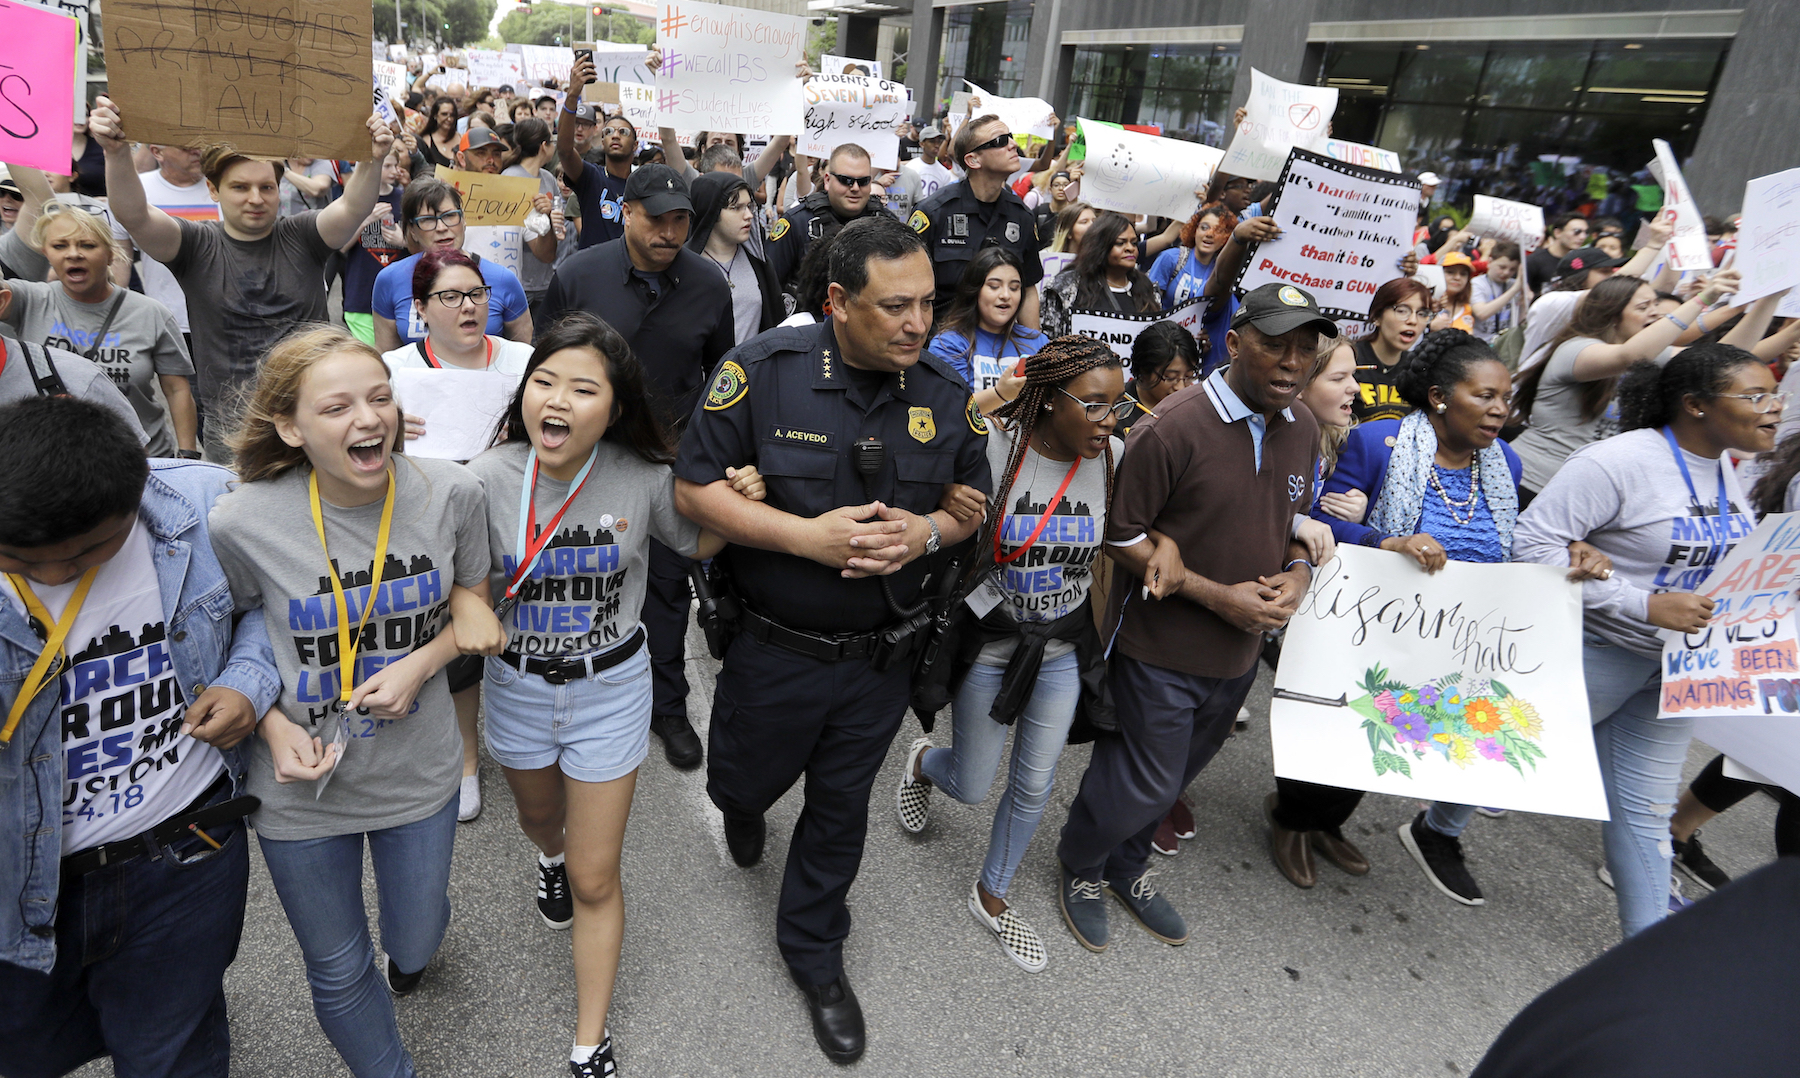 "<div class=""meta image-caption""><div class=""origin-logo origin-image ap""><span>AP</span></div><span class=""caption-text"">Houston Police Chief Art Acevedo, Houston Mayor Sylvester Turner, and Rep. Sheila Jackson Lee, D-Texas, join demonstrators during a March for Our Lives protest in Houston. (AP Photo/David J. Phillip)</span></div>"